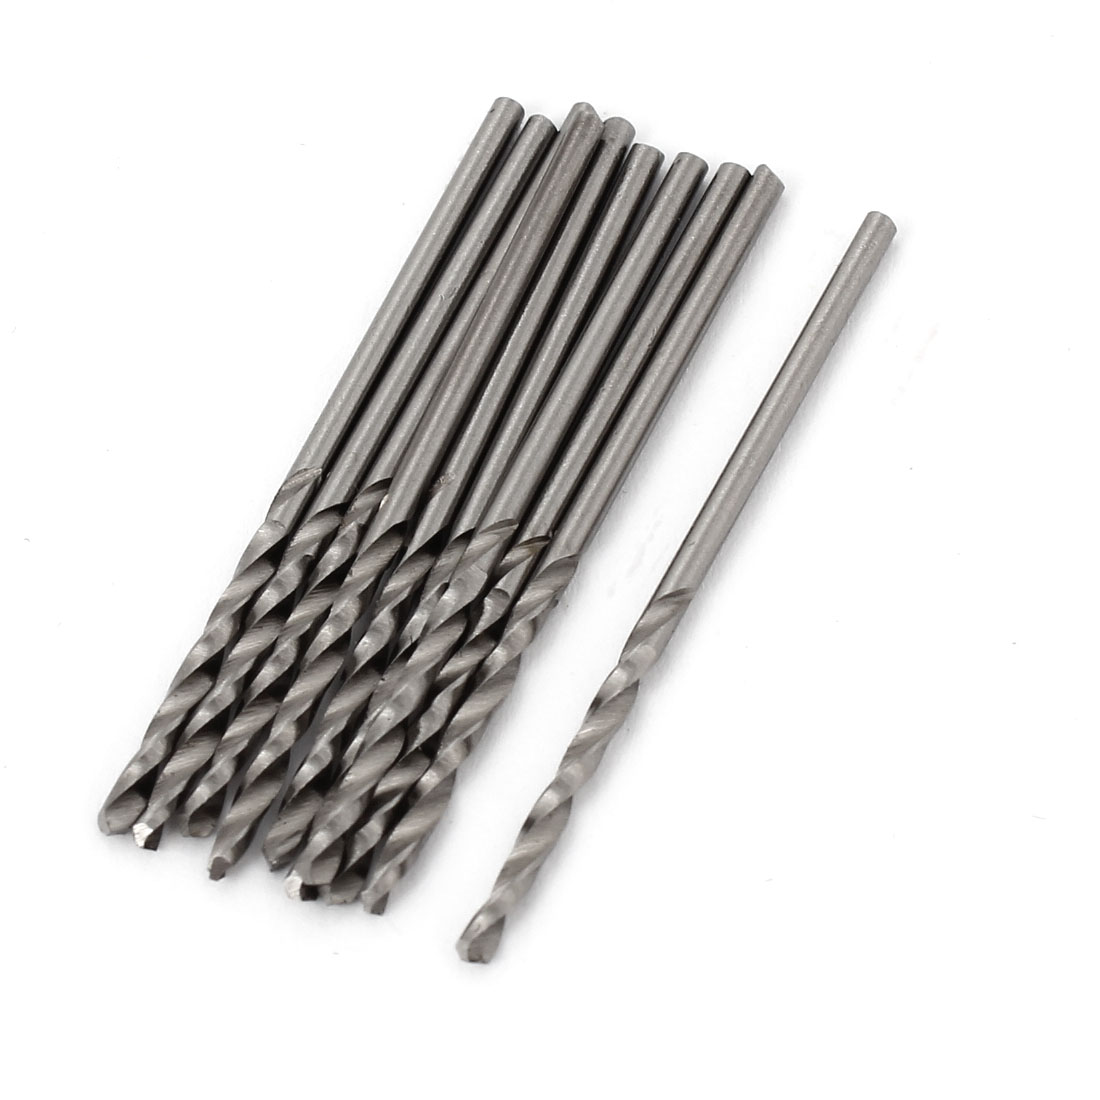 10 Pcs 20mm Length Flute 1.6mm Dia Metal Marble HSS Twist Drilling Drill Bit